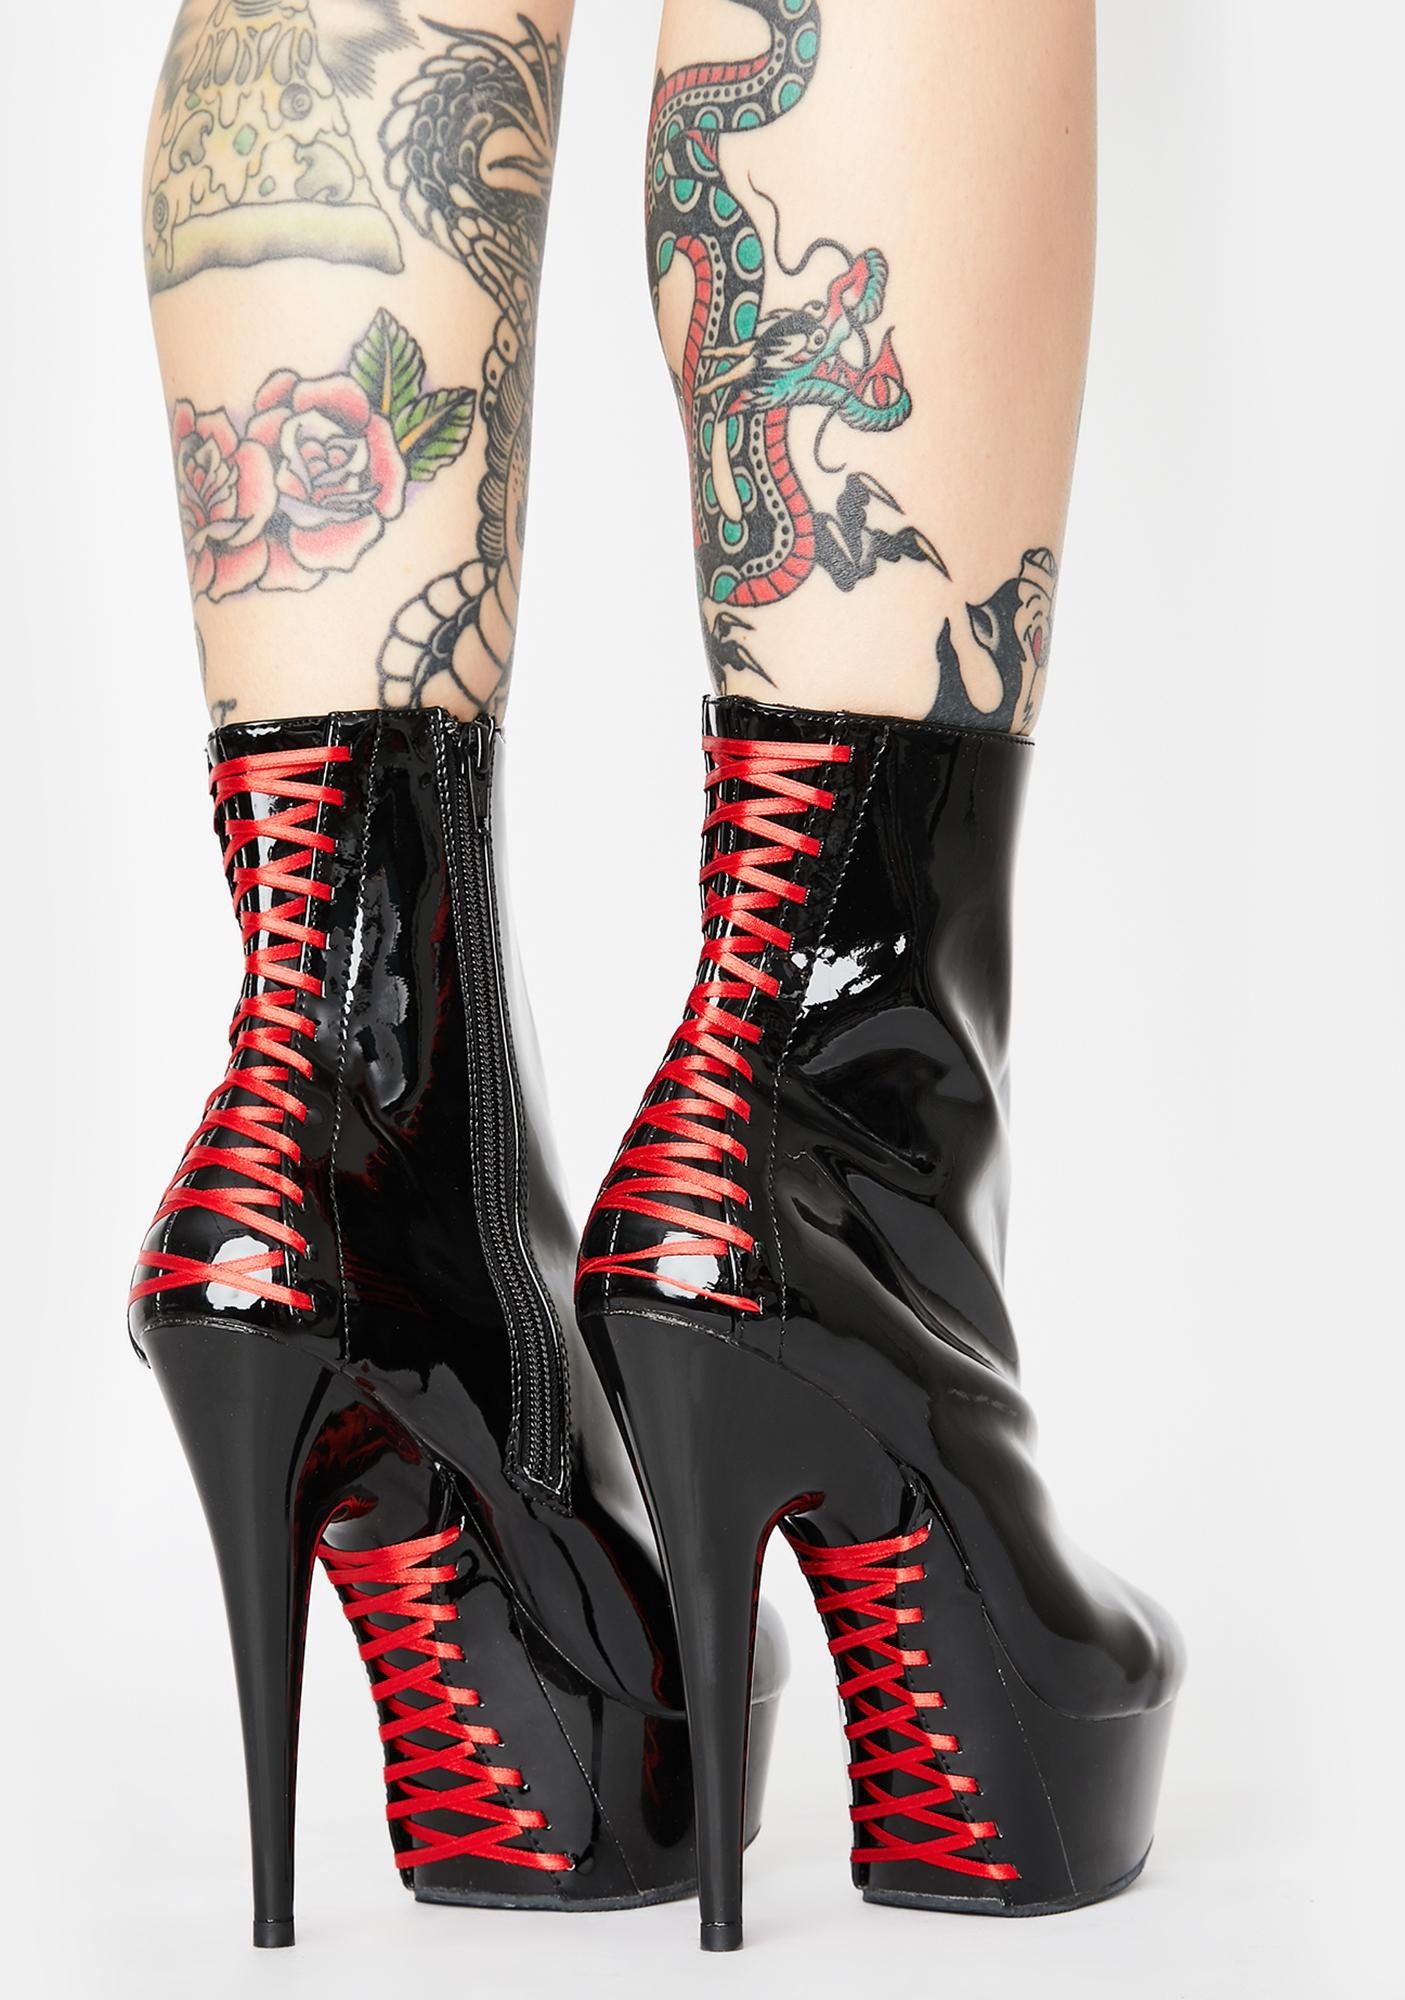 Pleaser Wicked Tease Stiletto Boots